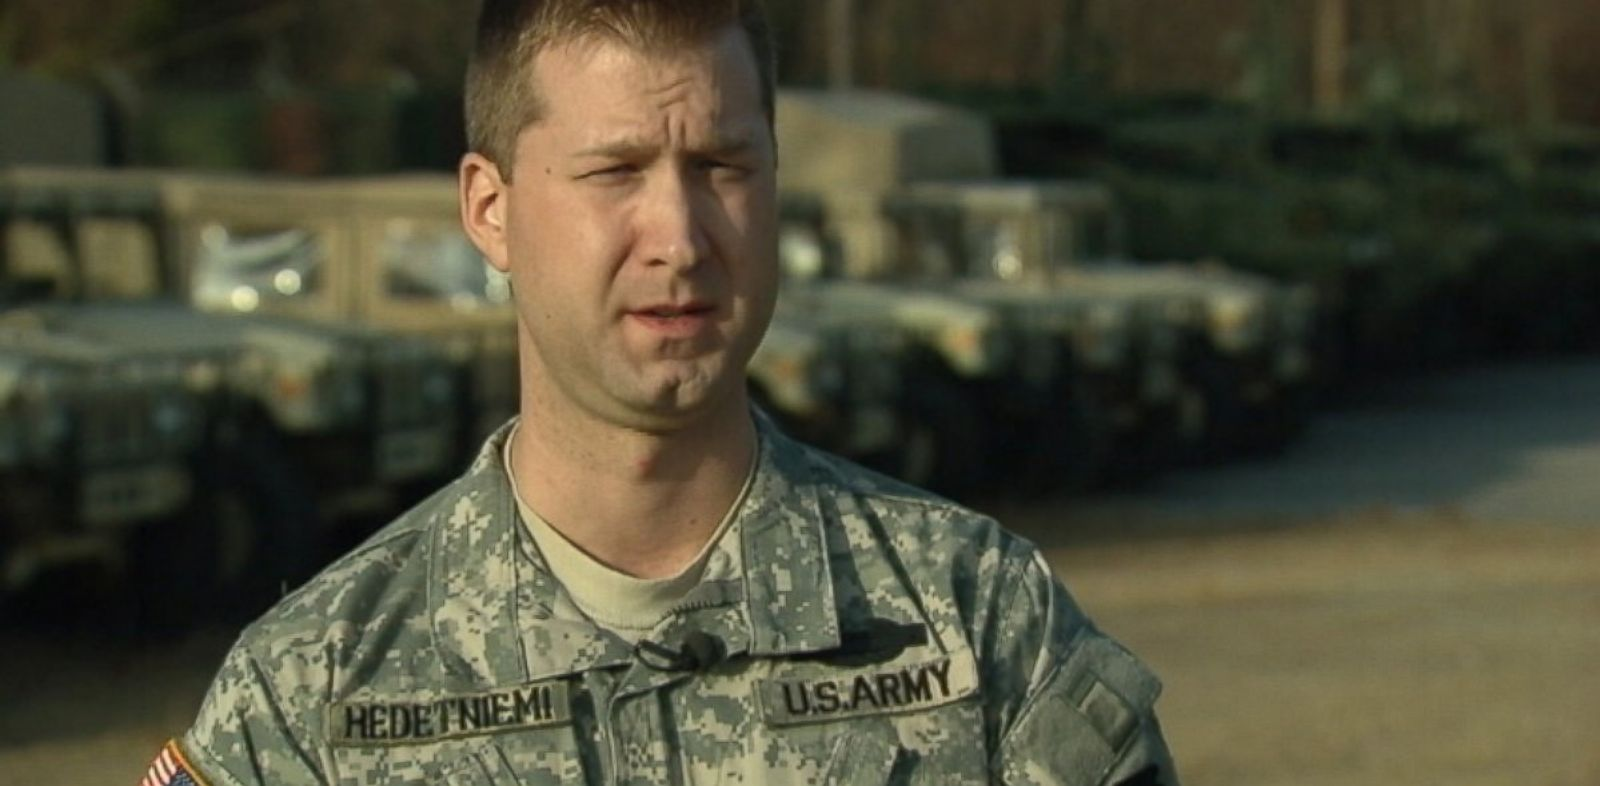 PHOTO: Josh Hedetniemi was serving with the Pennsylvania National Guard in Iraq in 2005 when four soldiers in his platoon were killed in an ambush.